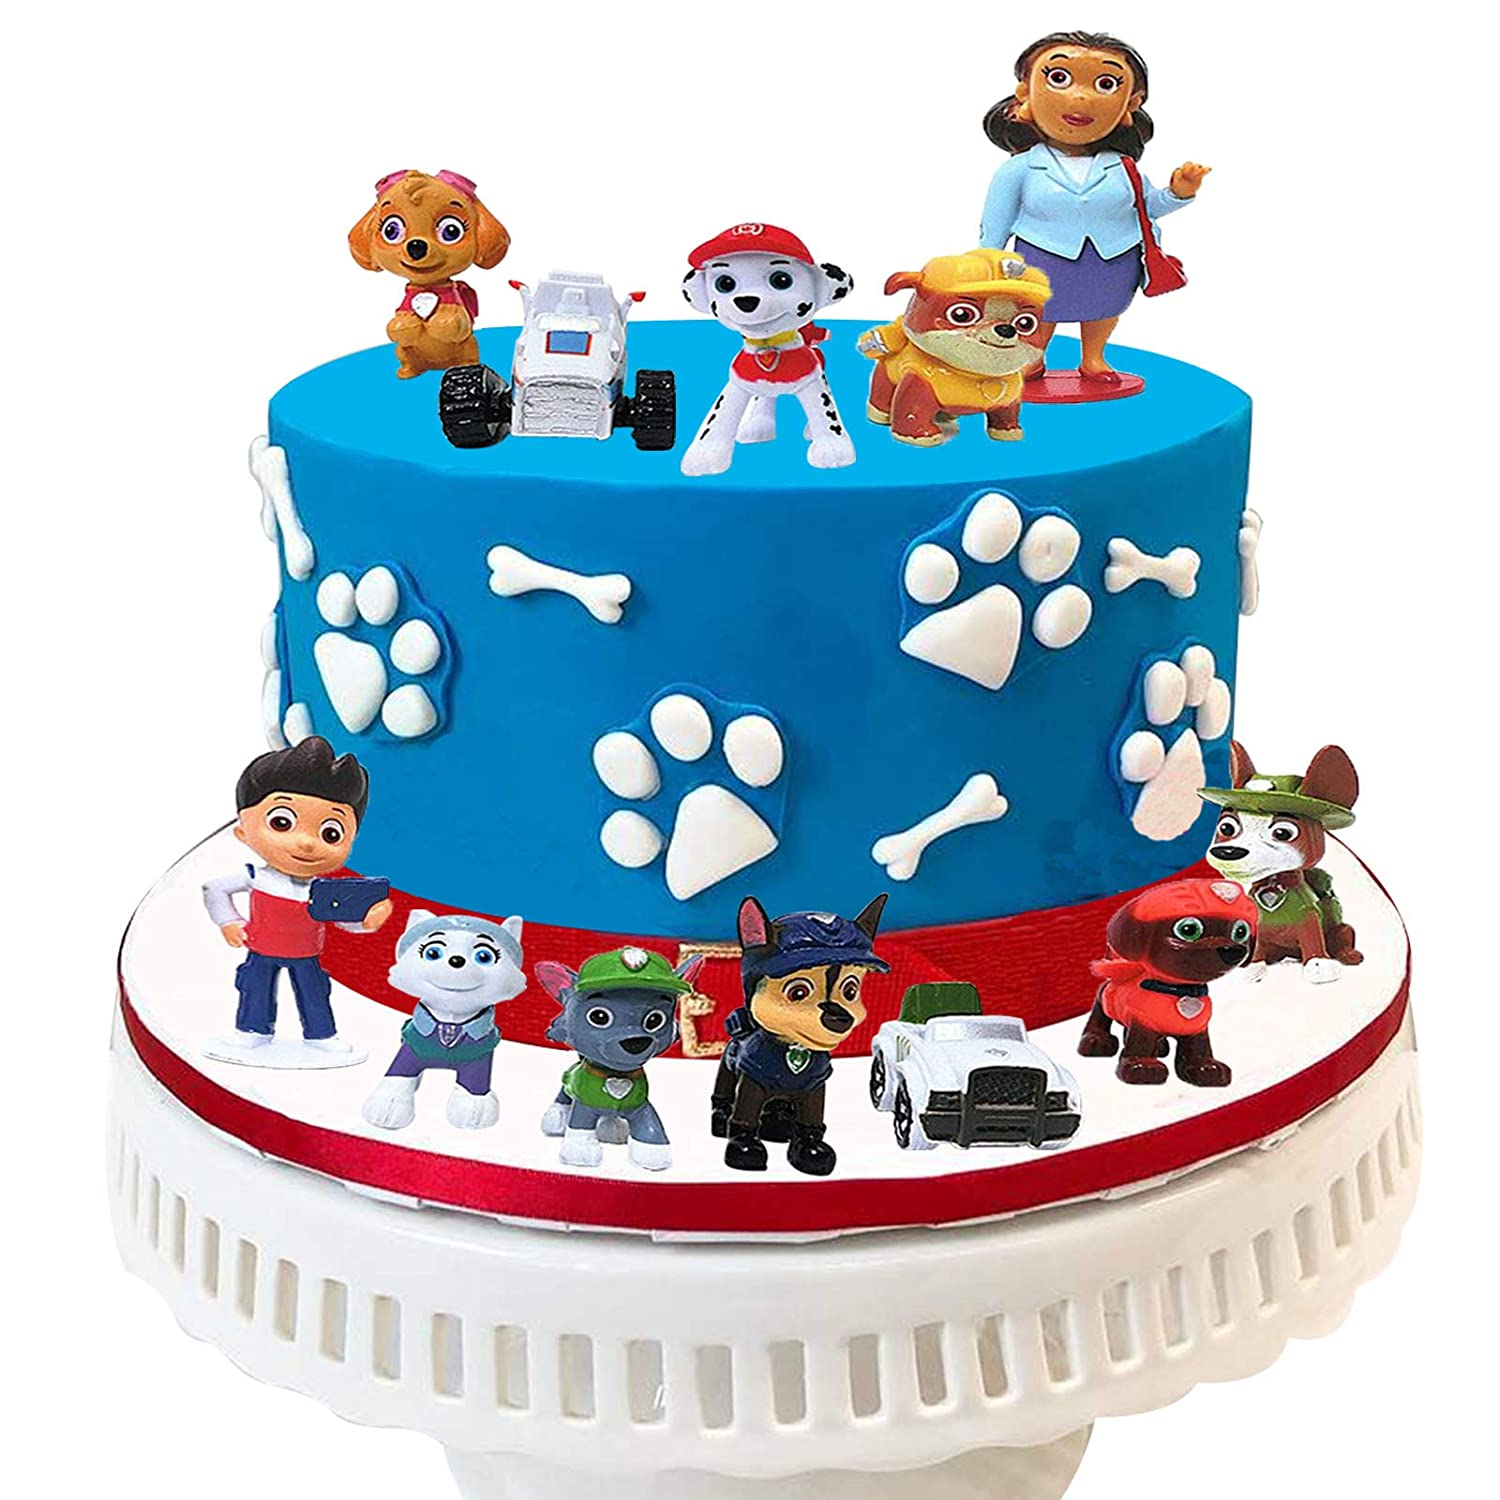 Incredible 12Pcs Paw Patrol Cake Toppers For Baby Shower Birthday Party Cake Funny Birthday Cards Online Alyptdamsfinfo